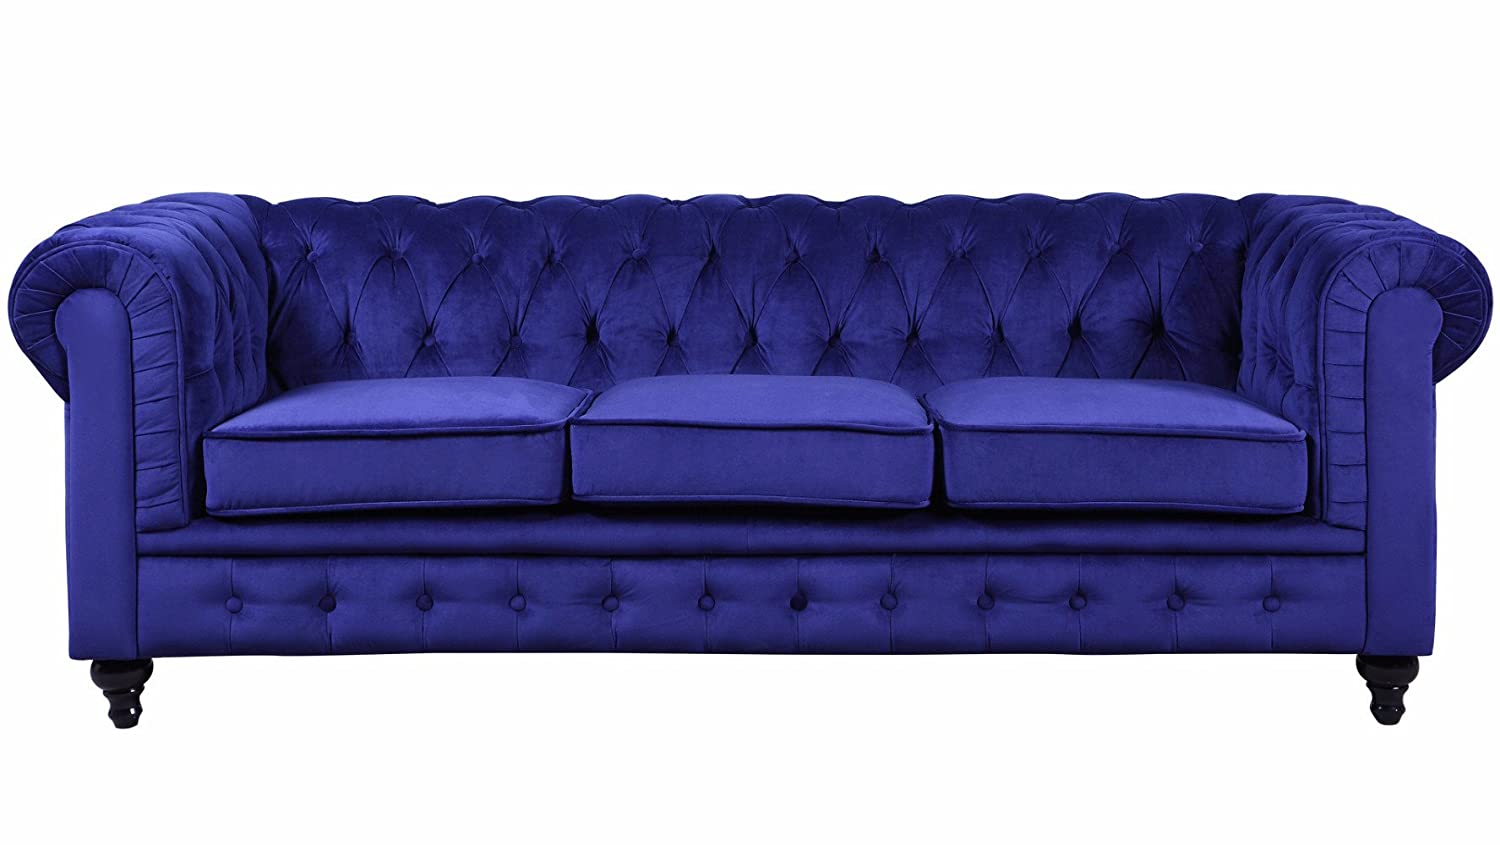 a loveseat sofa decorate org with and nhfirefighters the room set navy blue